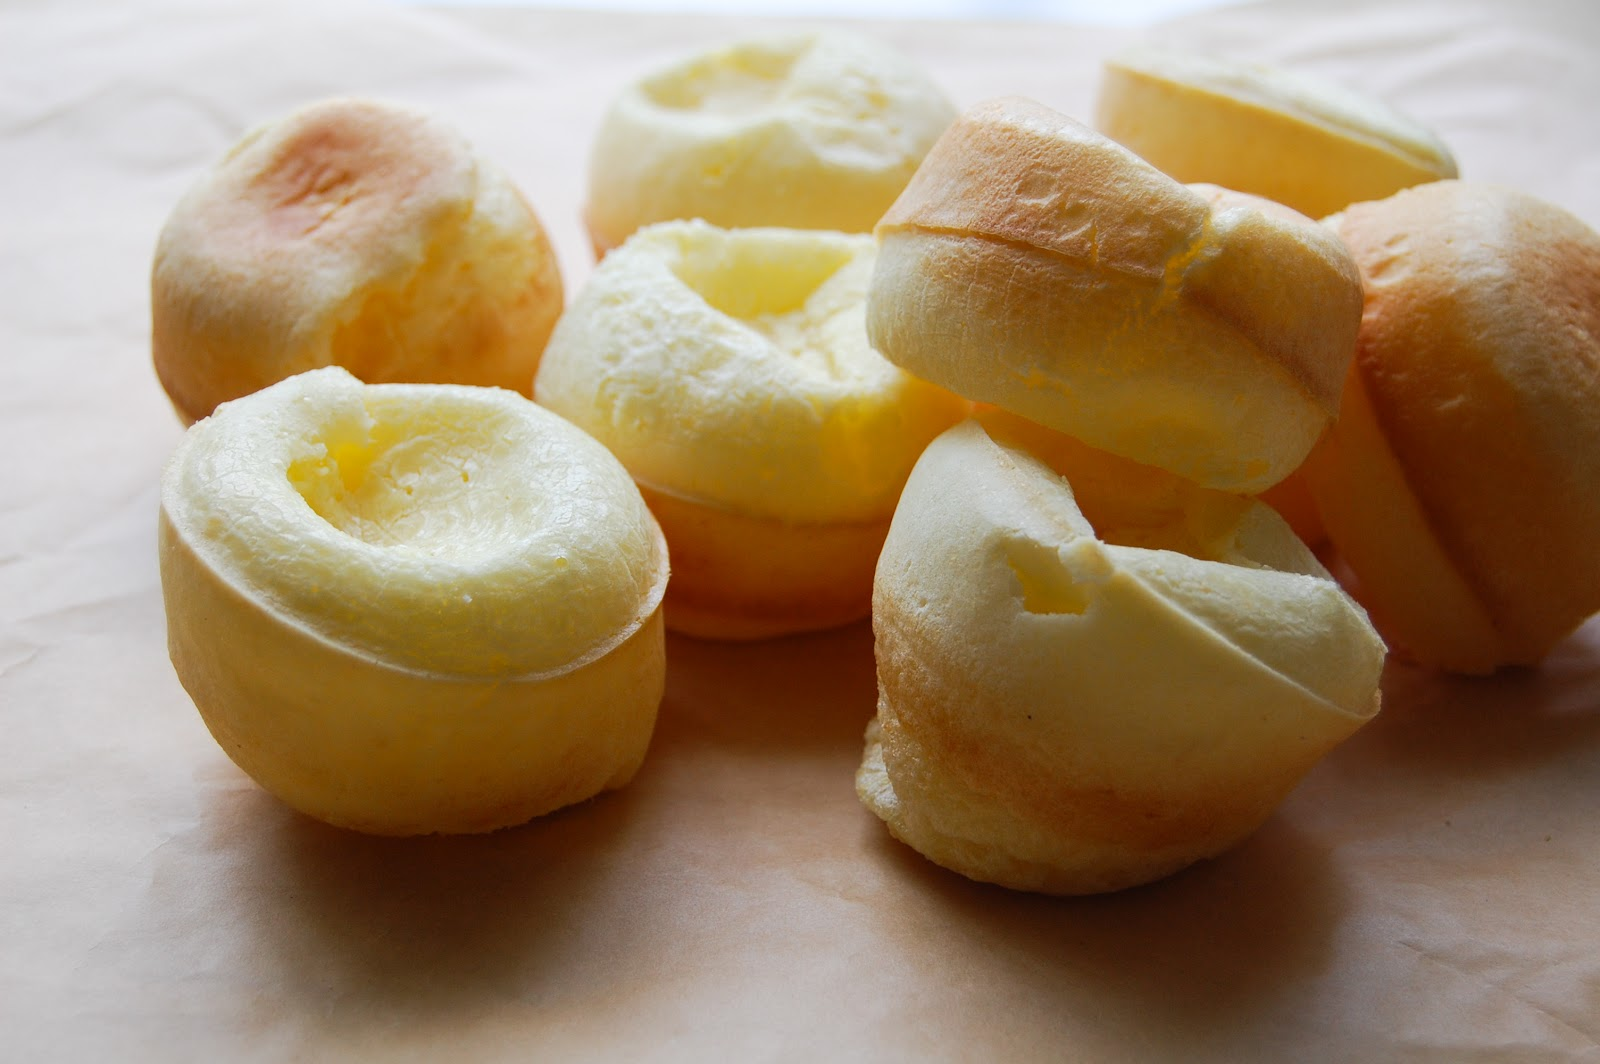 Blogging Foods: Pao de Queijo (Brazilian Cheese Bread) Version II